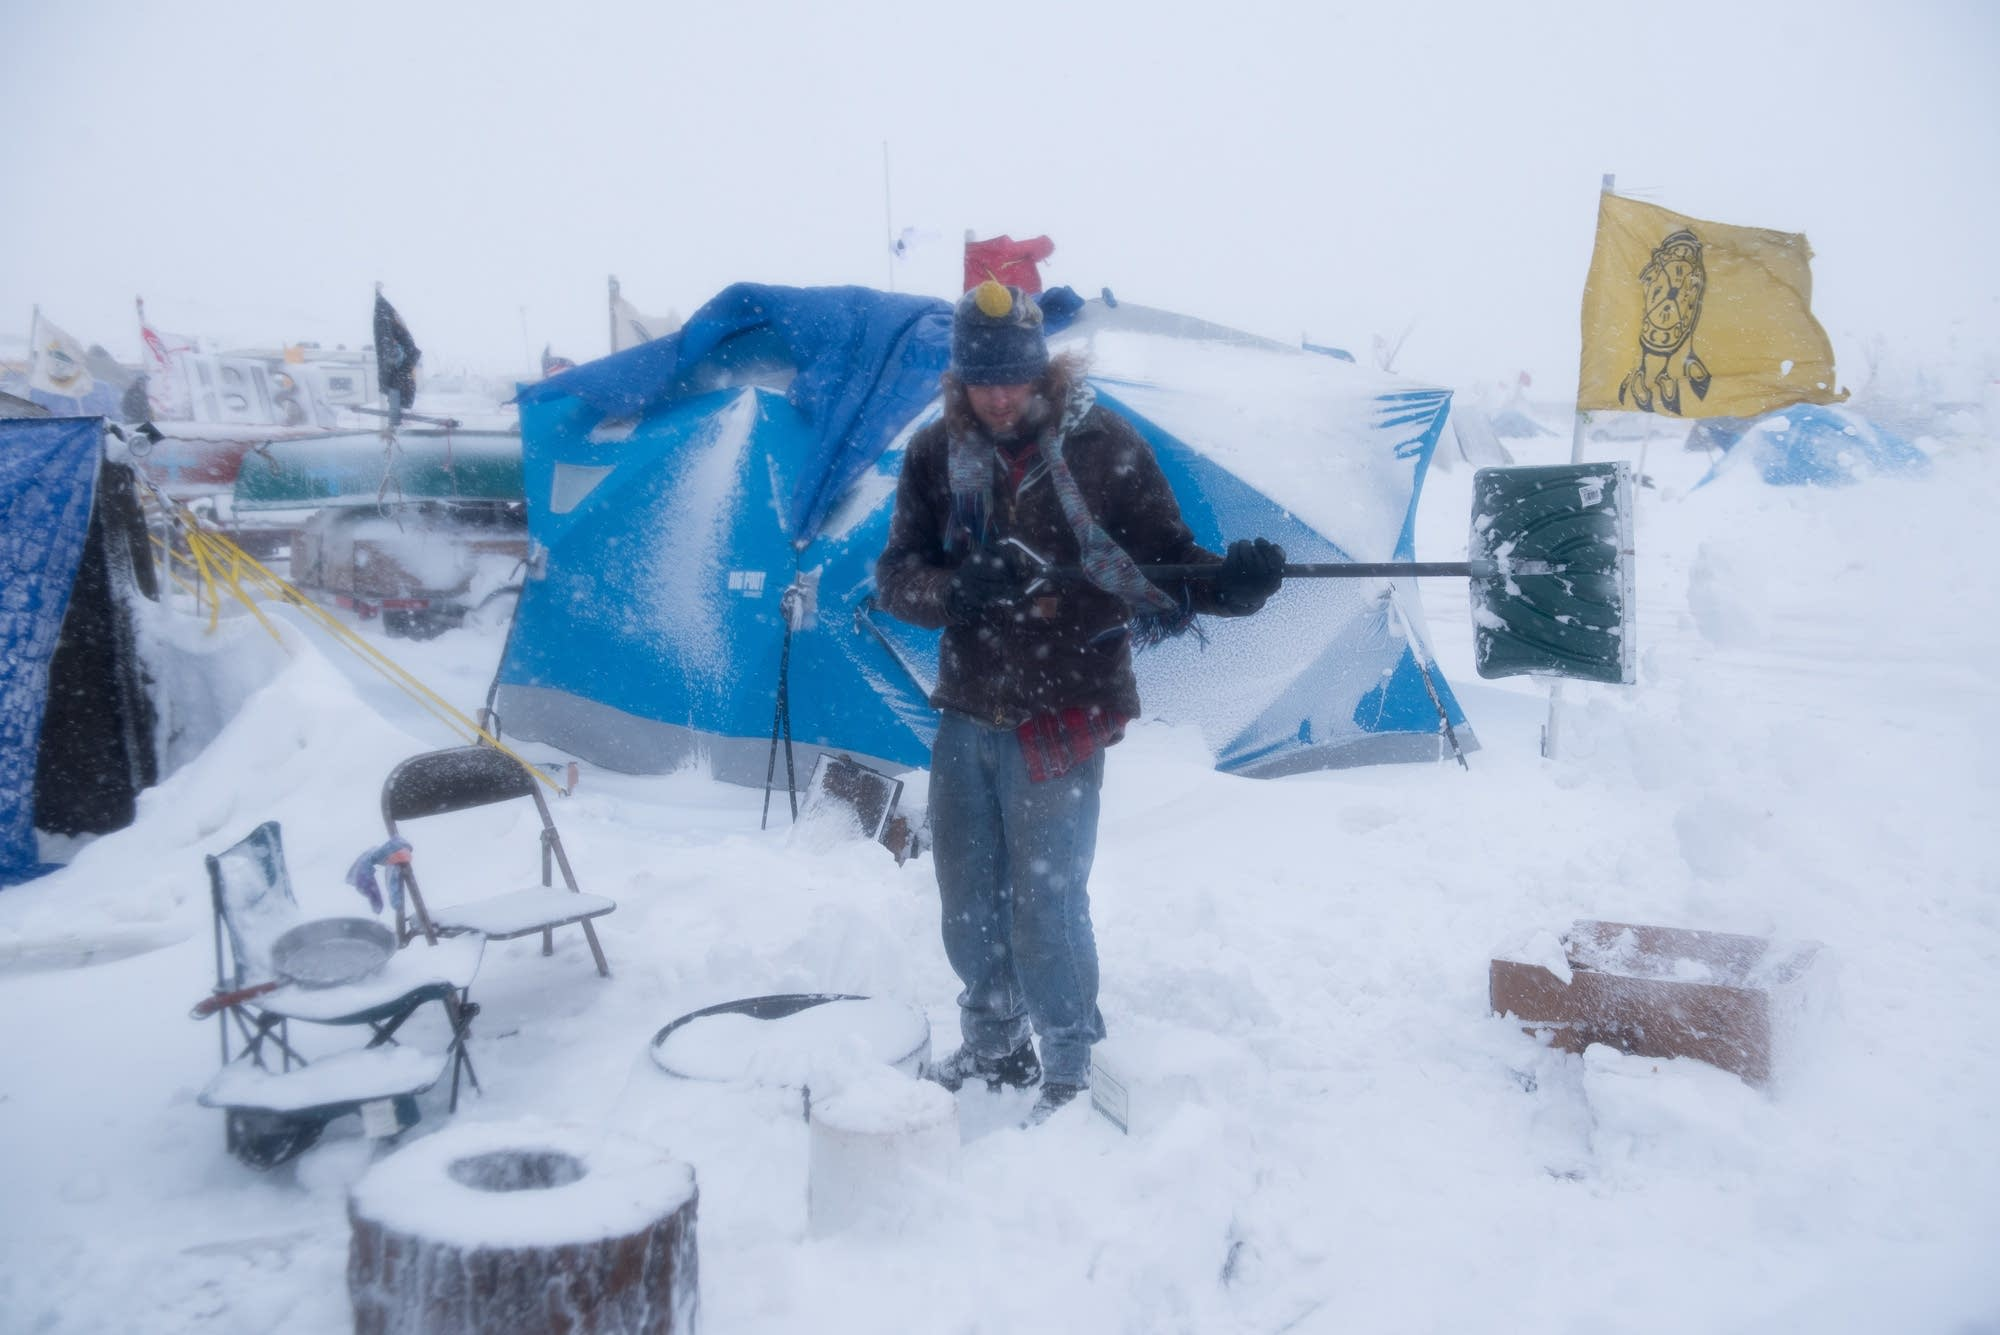 Clearing a campsite